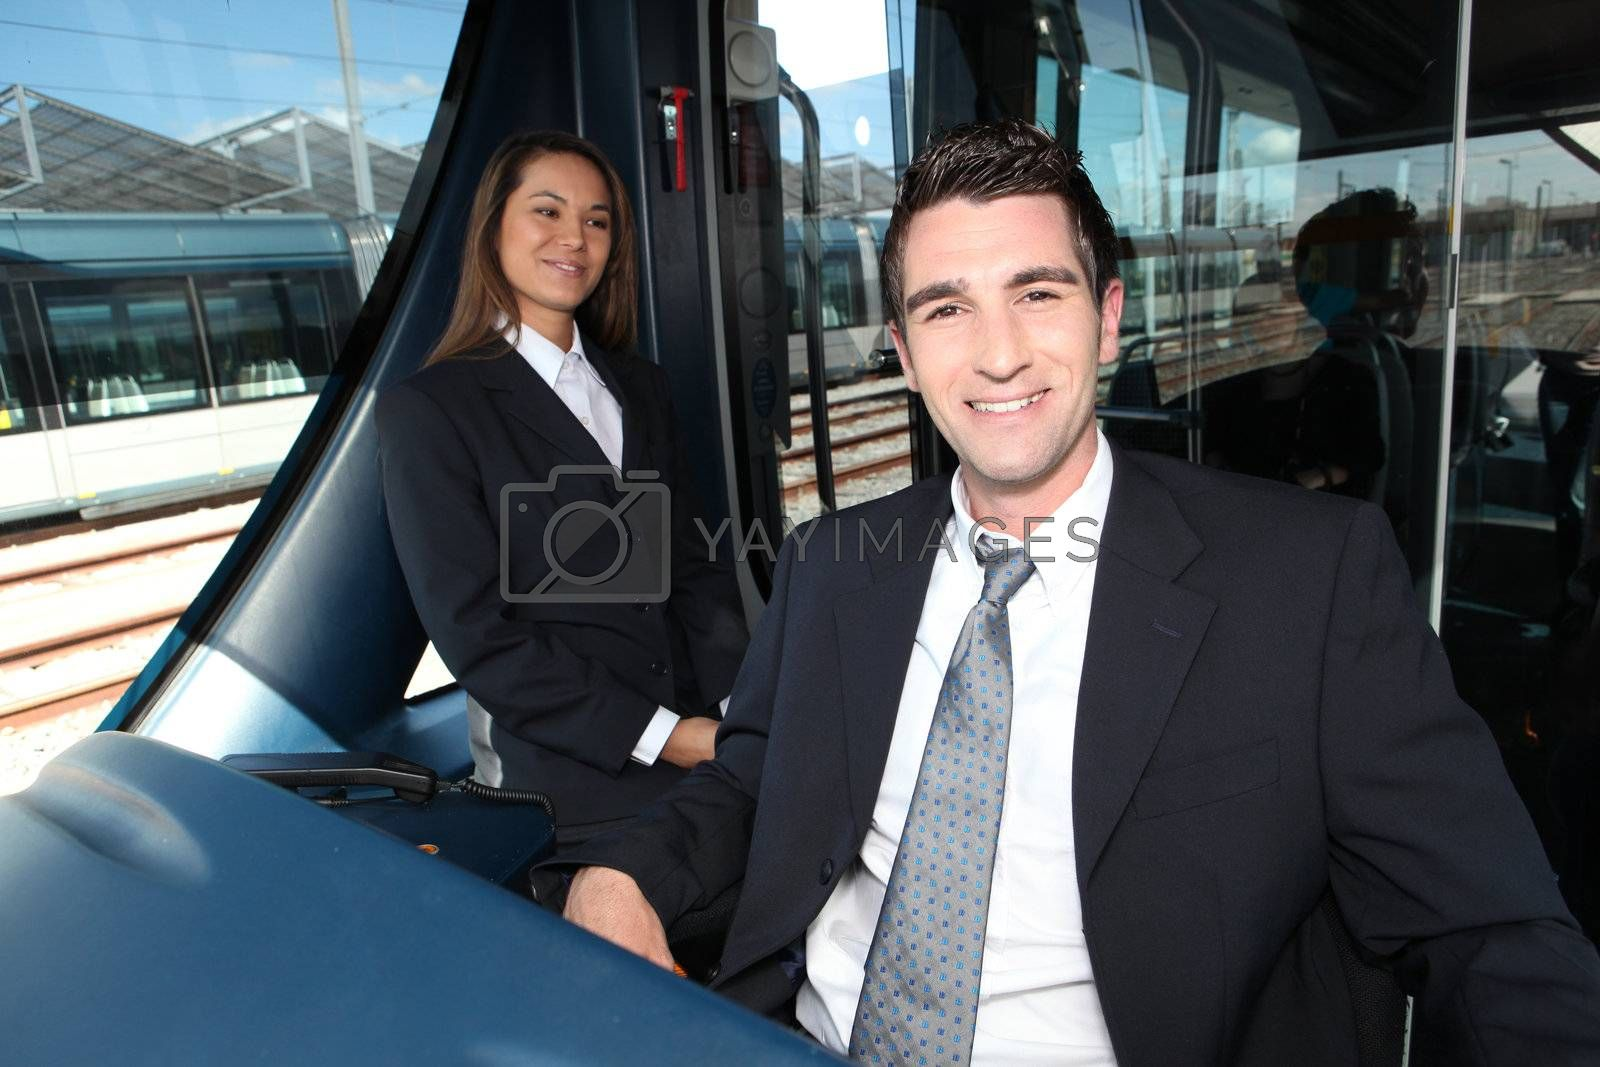 tramway driver by phovoir